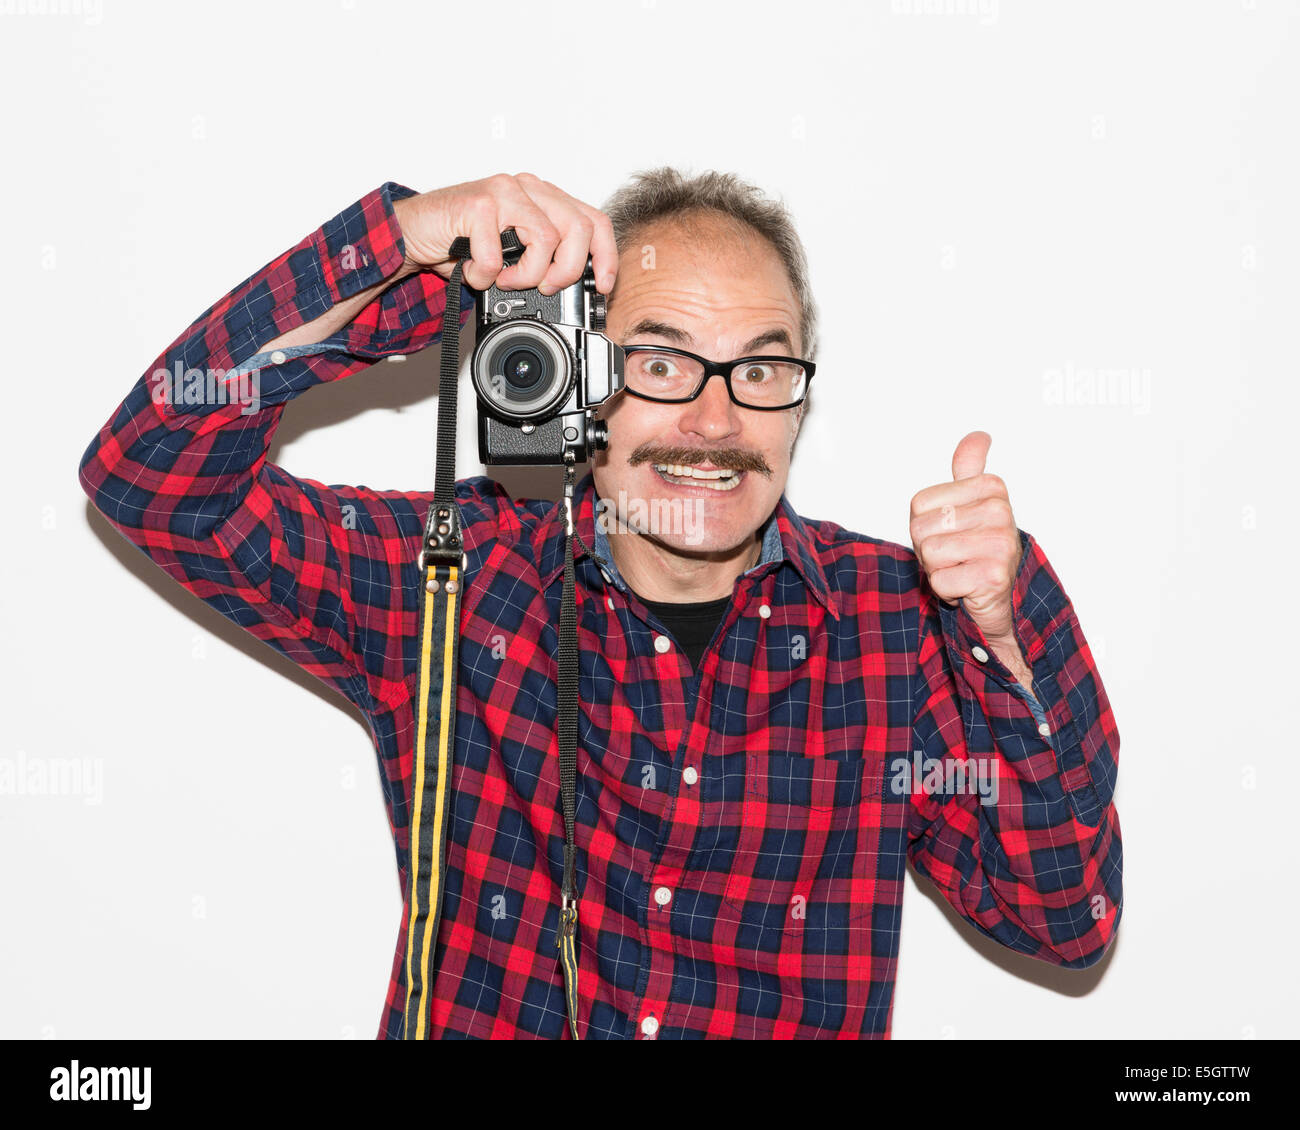 Fashion photographer guy with moustache, glasses, plaid shirt giving thumbs up and taking a picture with retro camera. - Stock Image